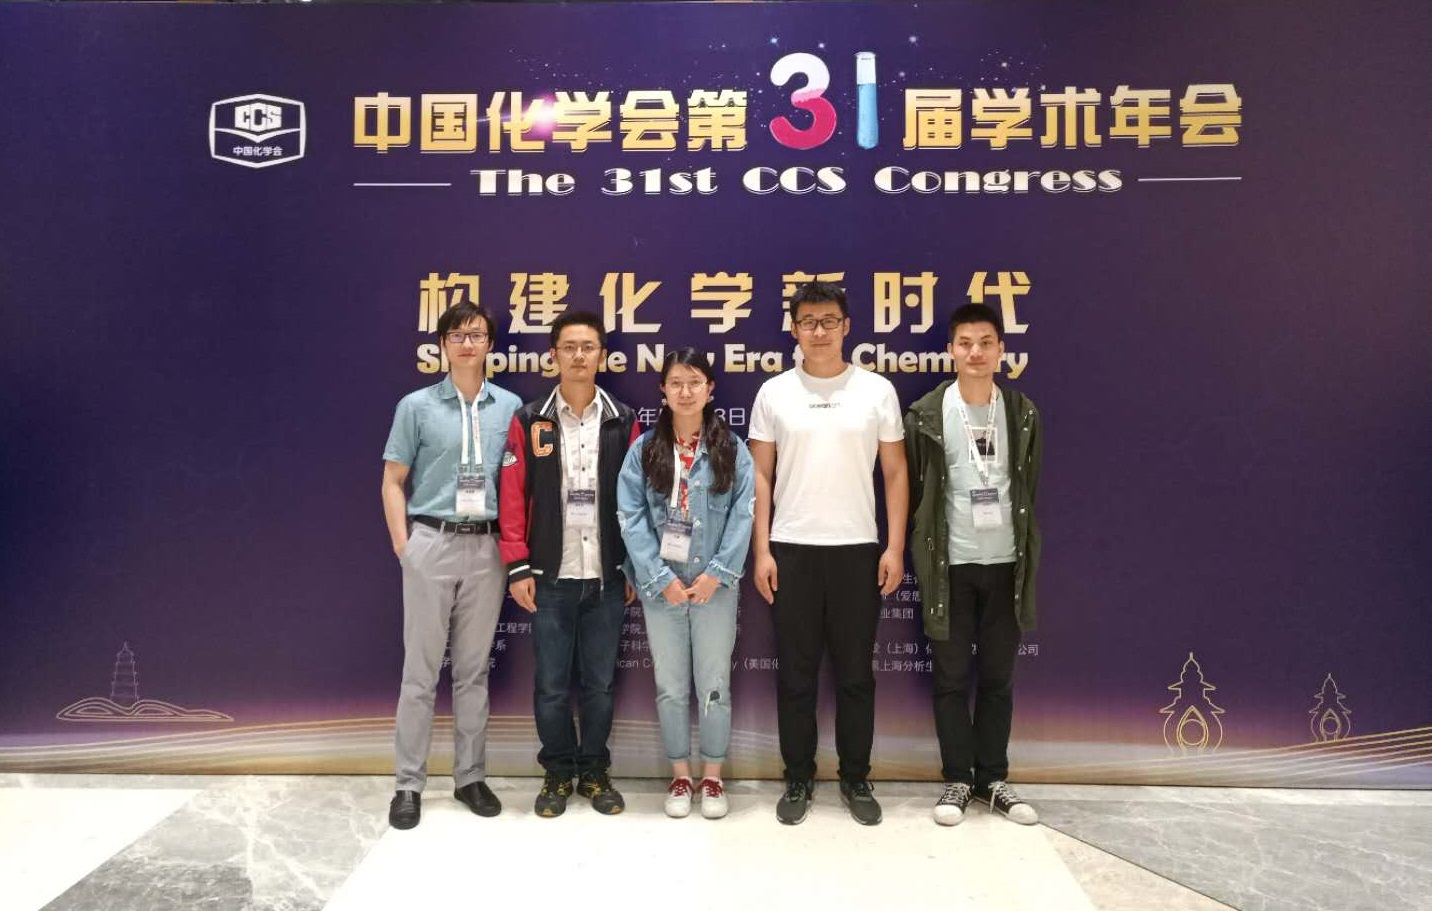 Xu group attended the 31st CCS Congress